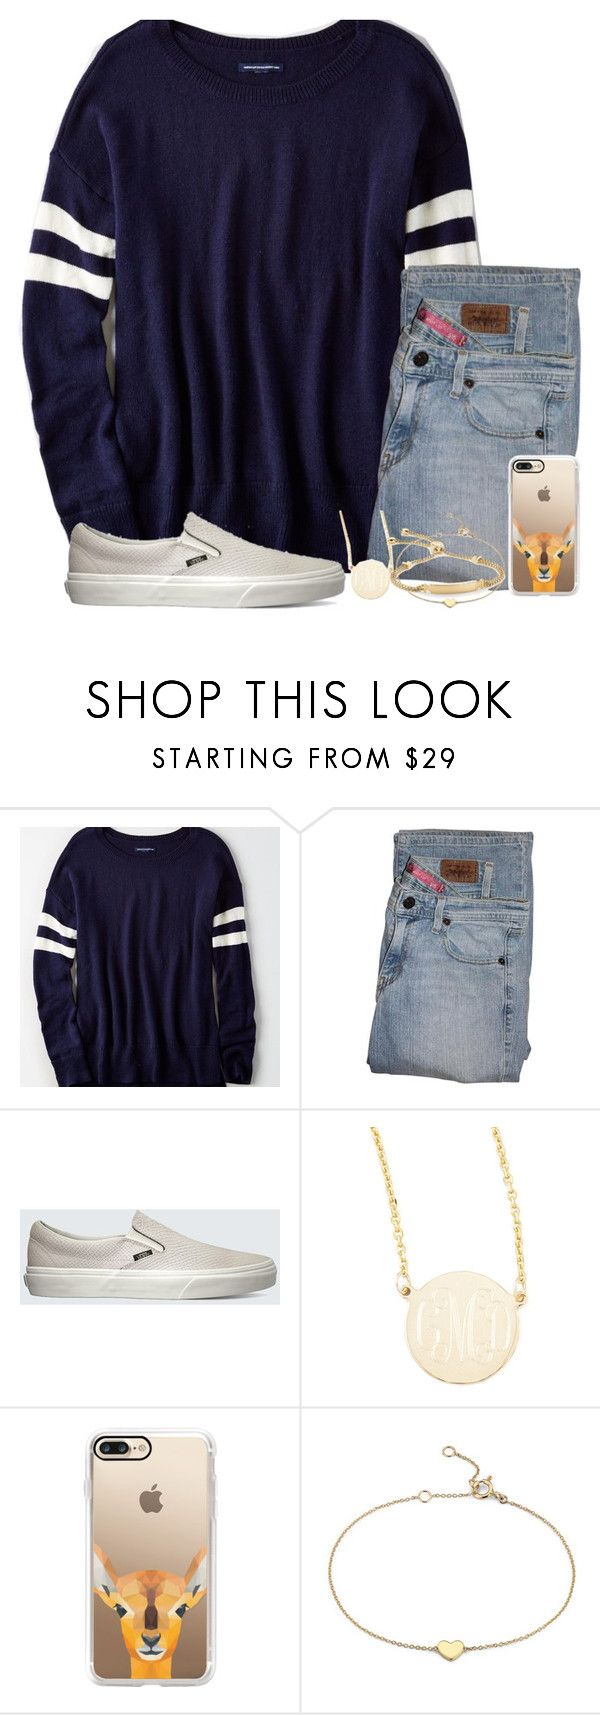 """""""oh deer"""" by legitimately-kierstin ❤ liked on Polyvore featuring American Eagle Outfitters, Levi's, Vans, Sarah Chloe, Casetify, Blue Nile and Monica Vinader"""